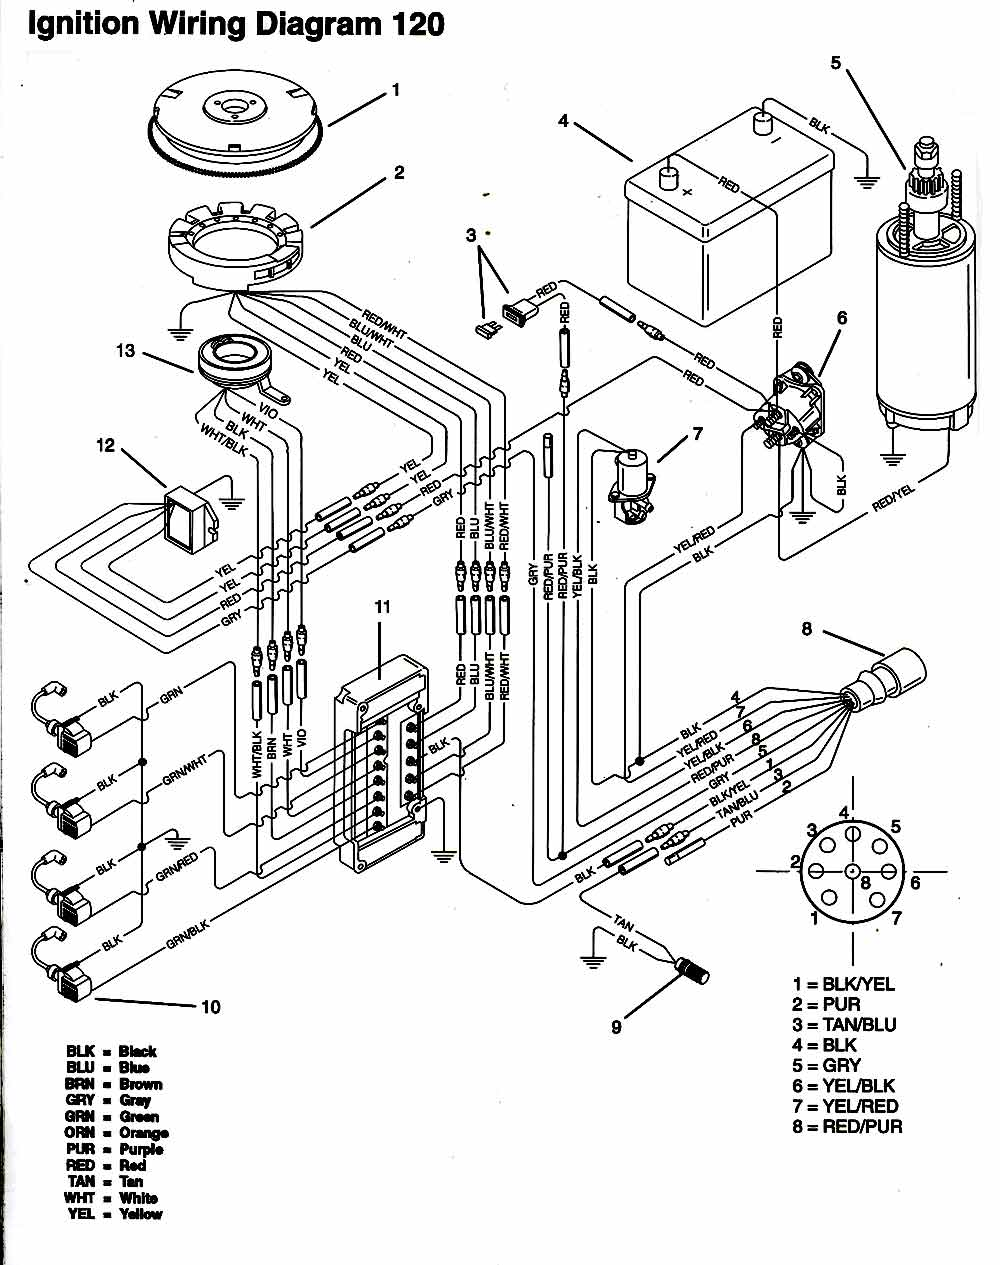 1995 Mercury Outboard 115 Hp Wiring Diagram Wiring Diagram & Fuse Mercury  60 HP Wiring Diagram Schematic 1995 Mercury 115 Outboard